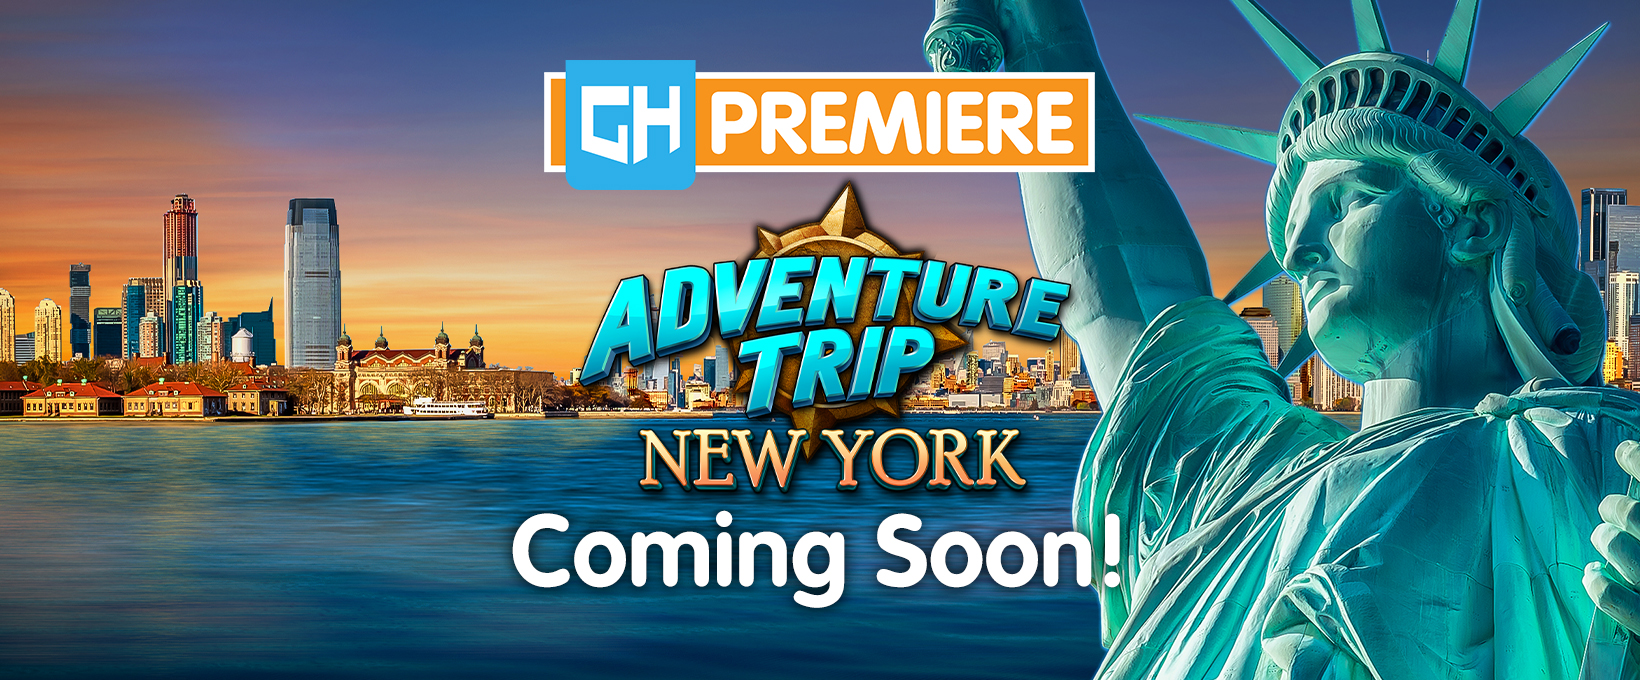 adventure-trip-new-york_Facebook-COMING-GH